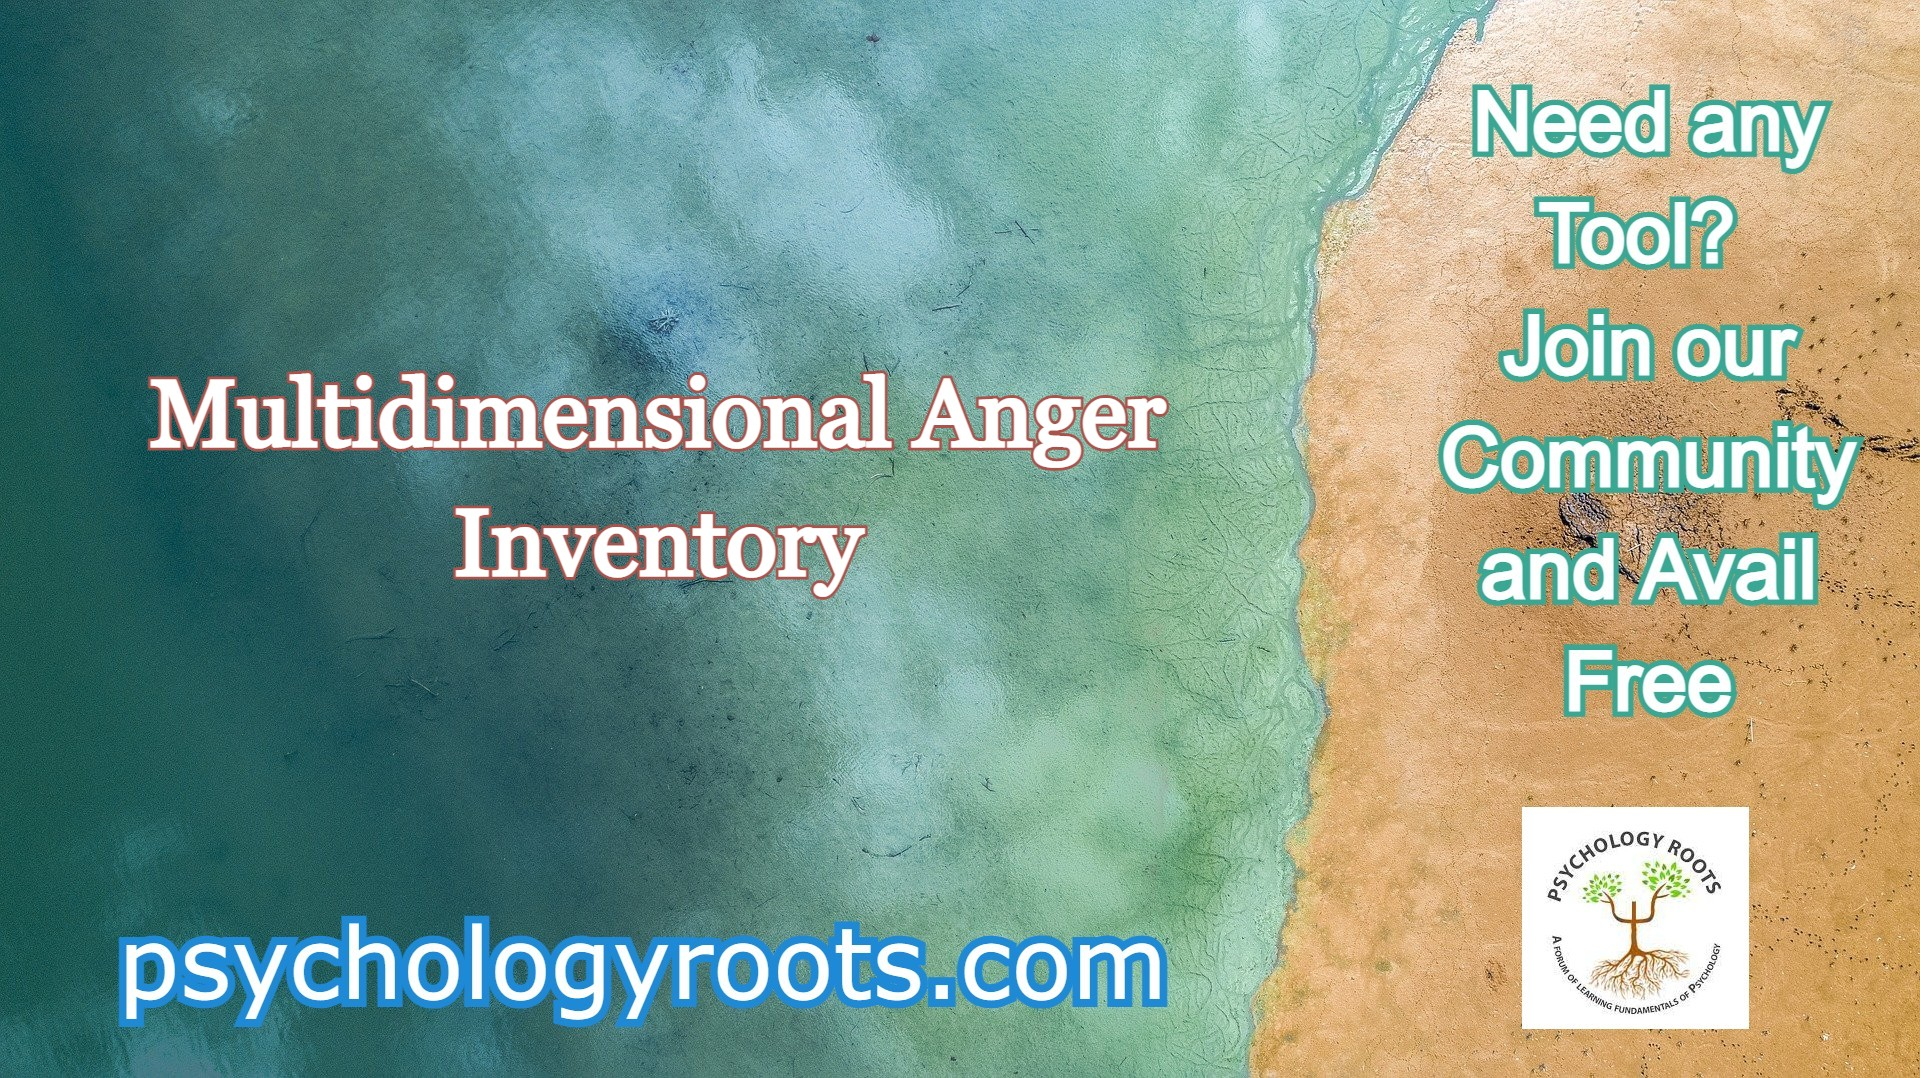 Multidimensional Anger Inventory